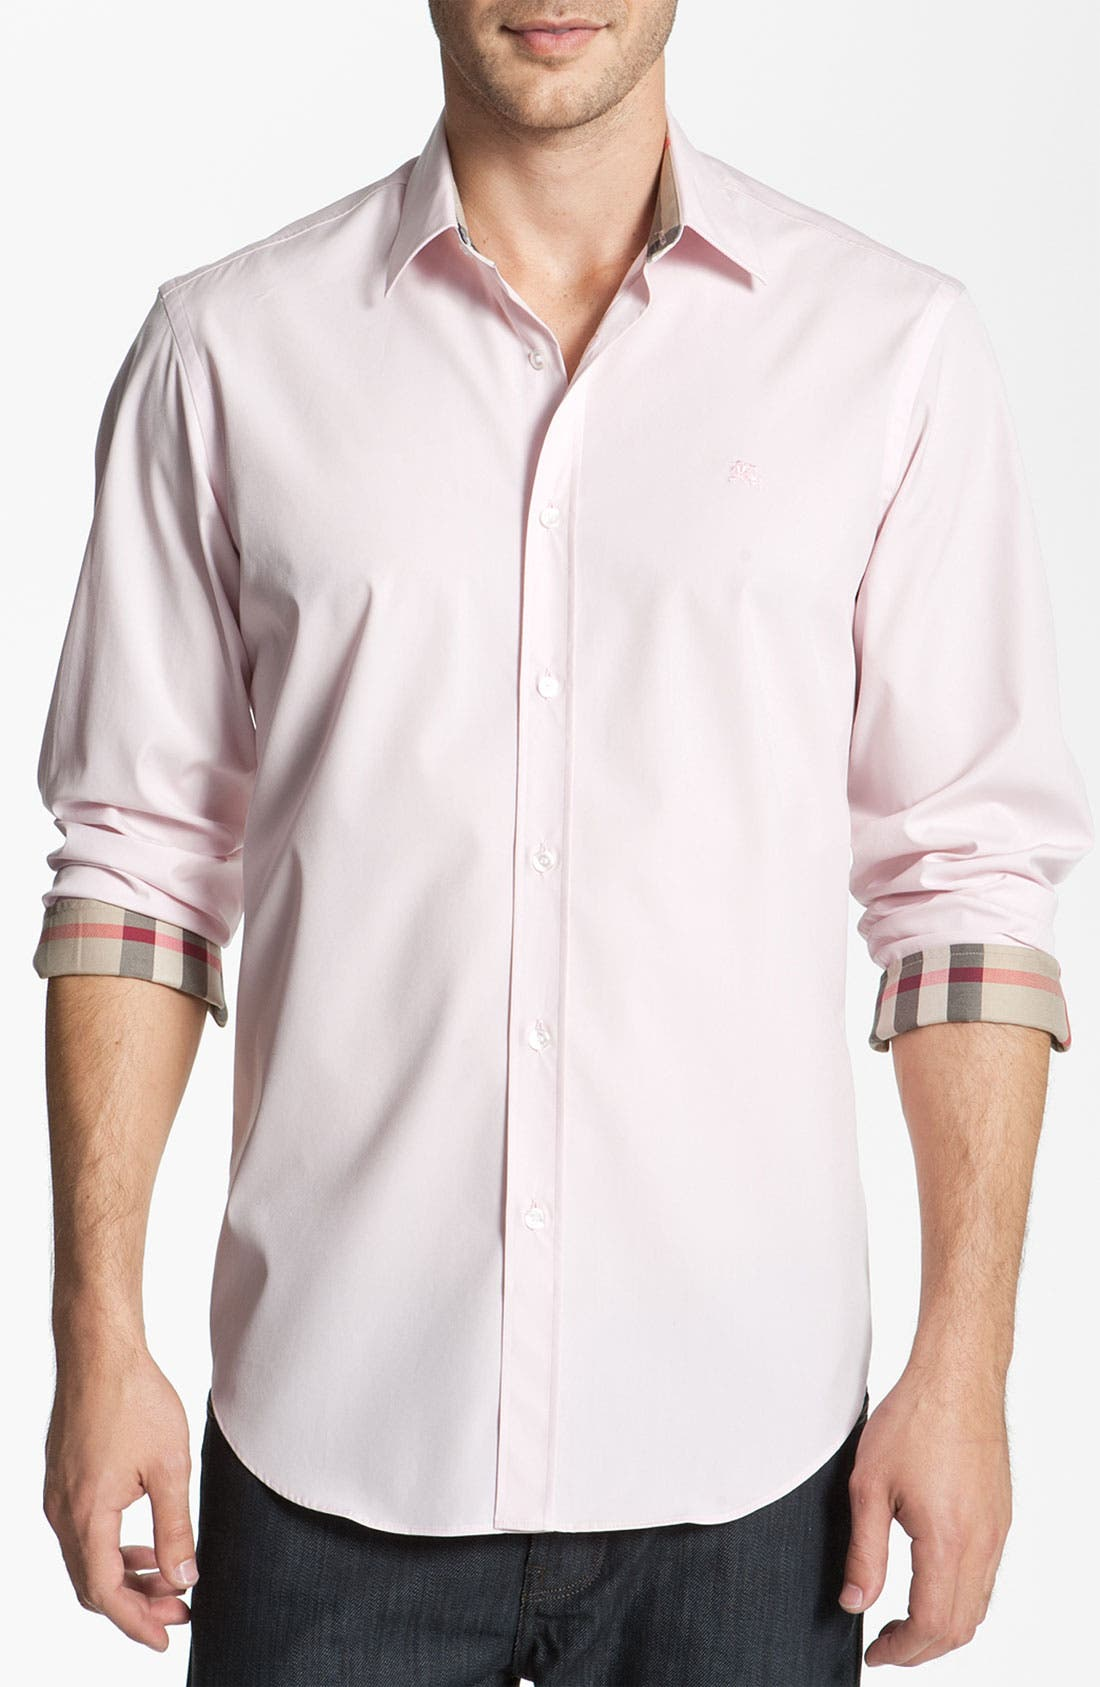 Alternate Image 1 Selected - Burberry Brit Poplin Trim Fit Sport Shirt